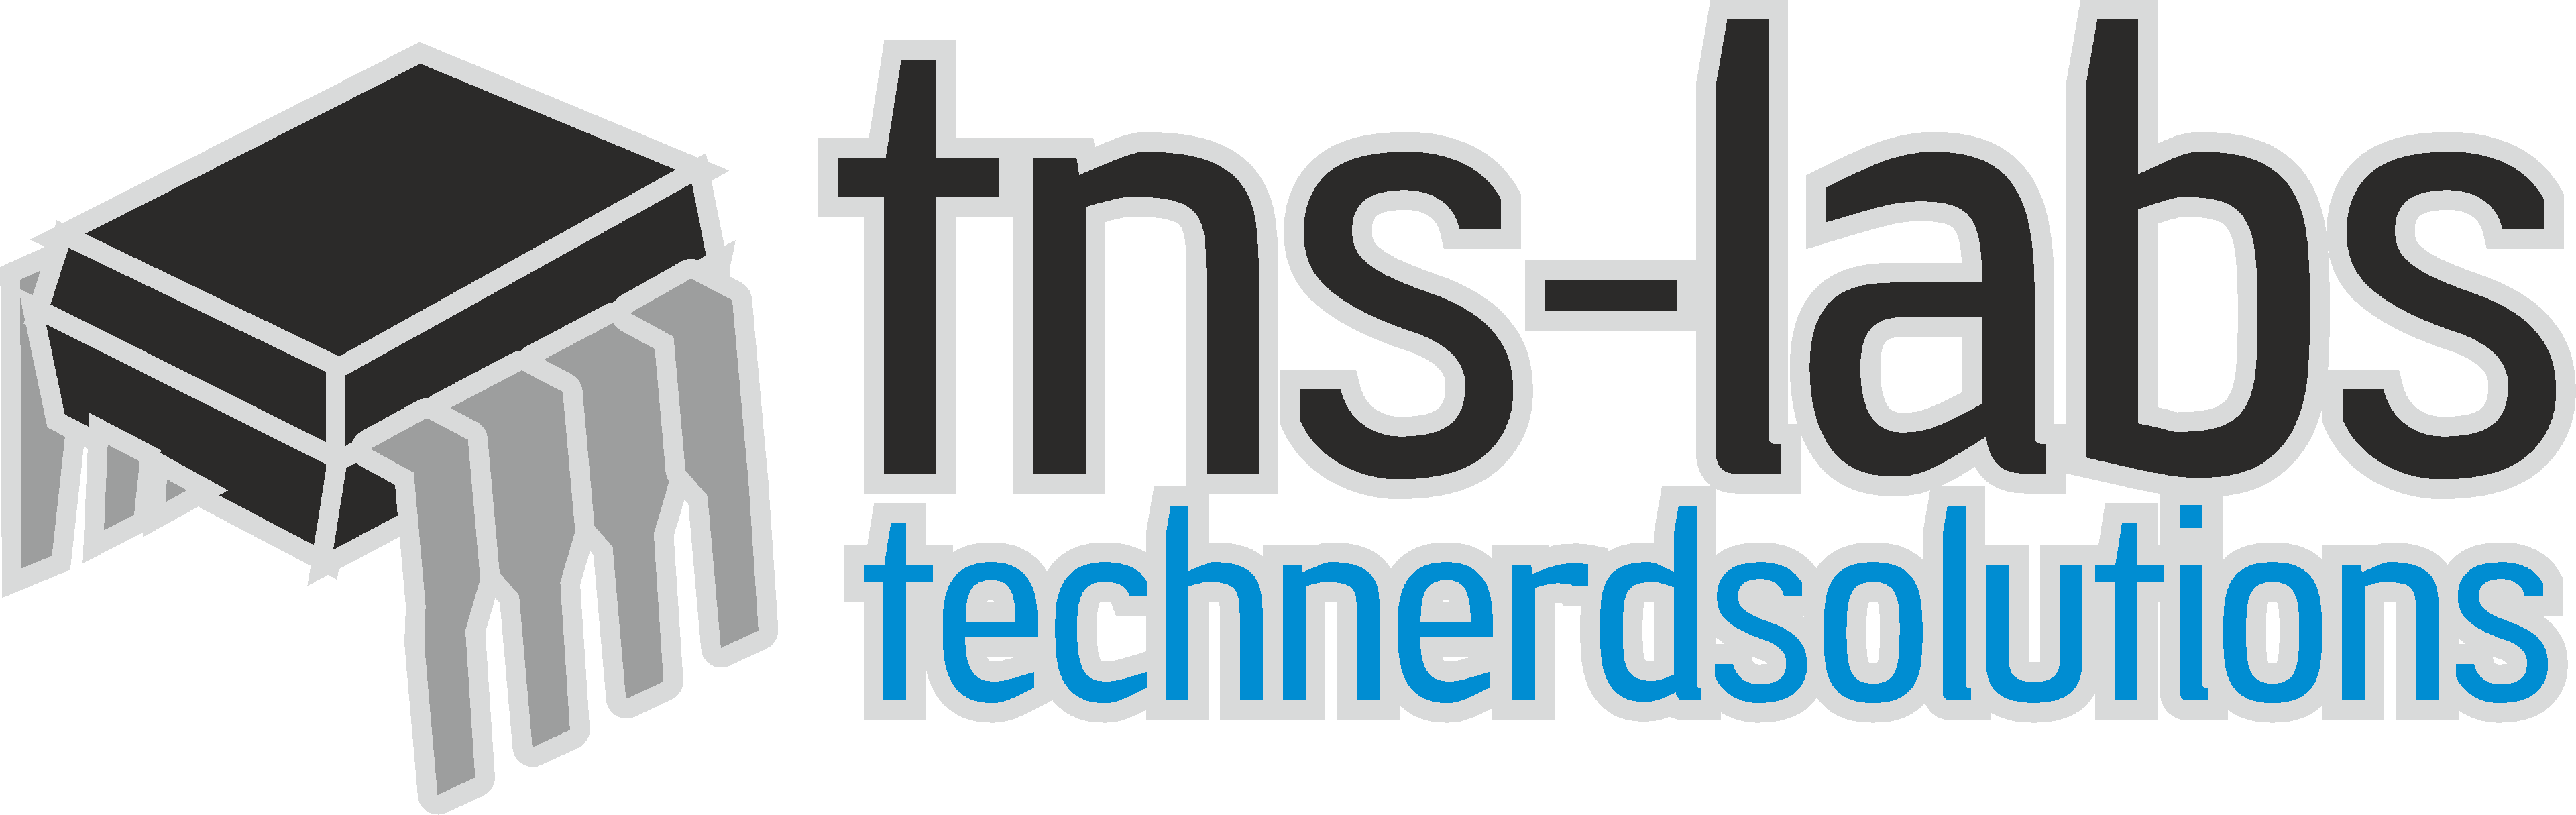 MSP430 | Using Timer Interrupts instead of Delays – tns-labs